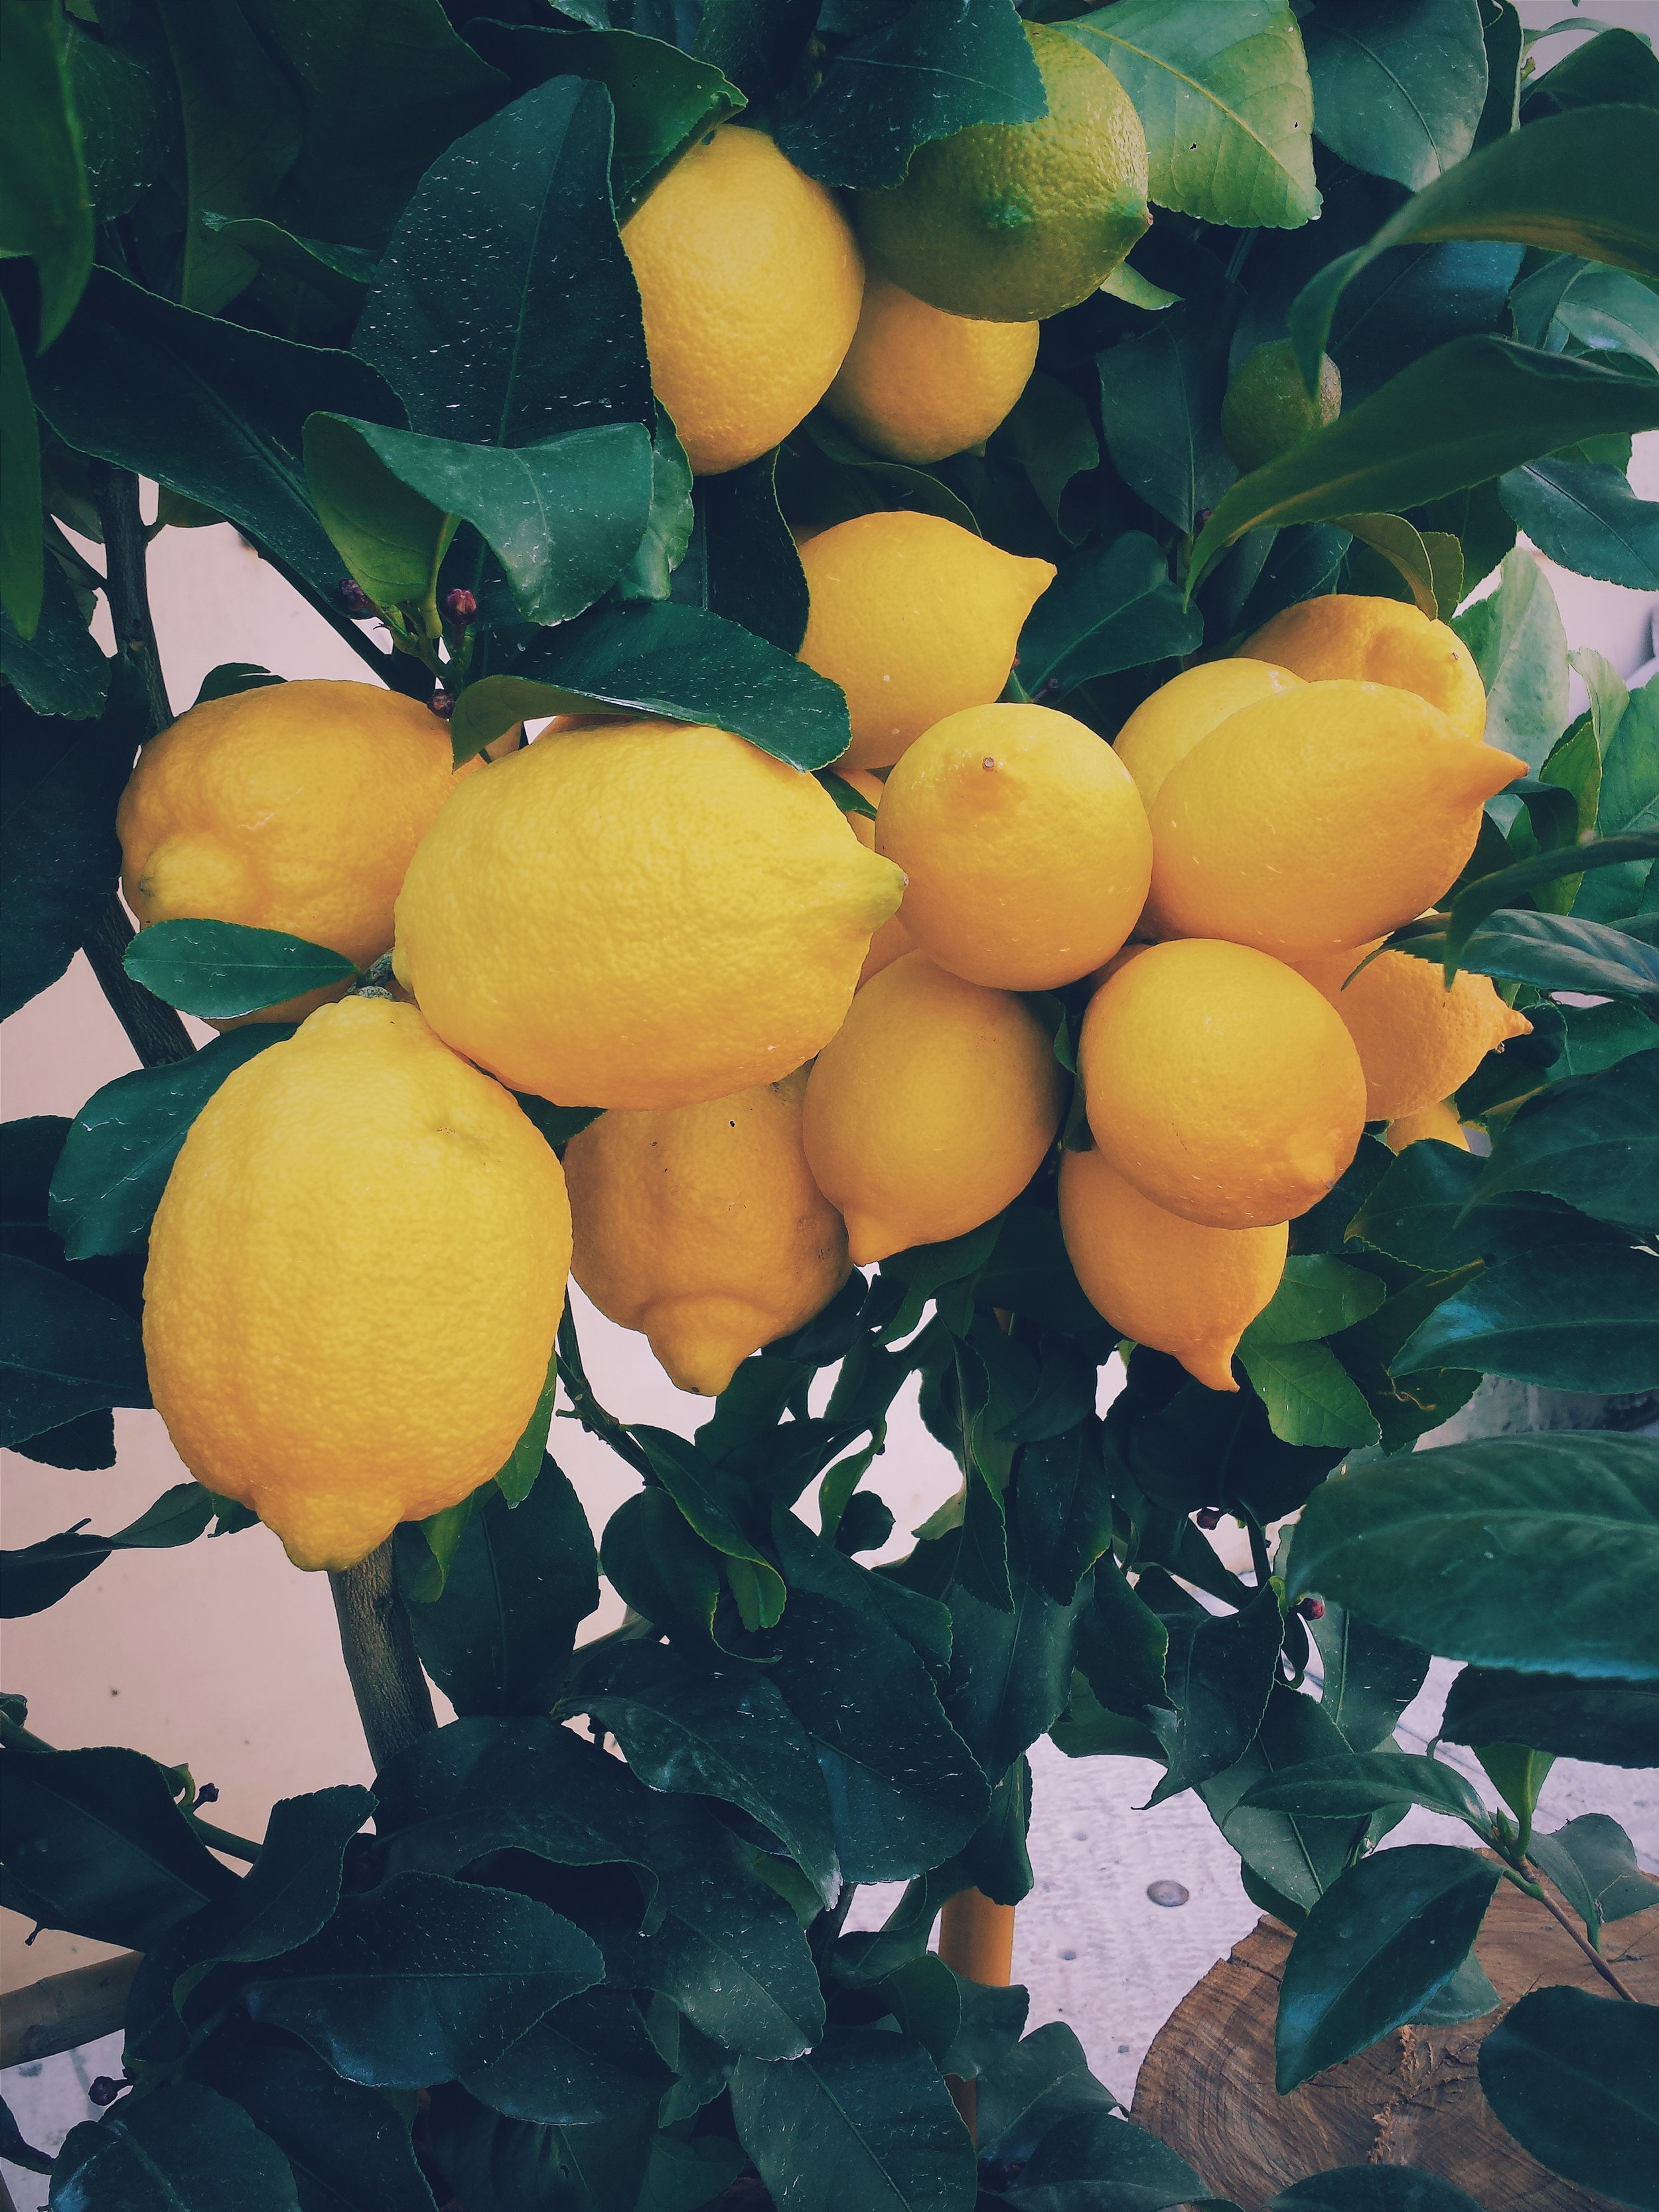 Your liver loves lemons (and its really important to be nice to your liver).